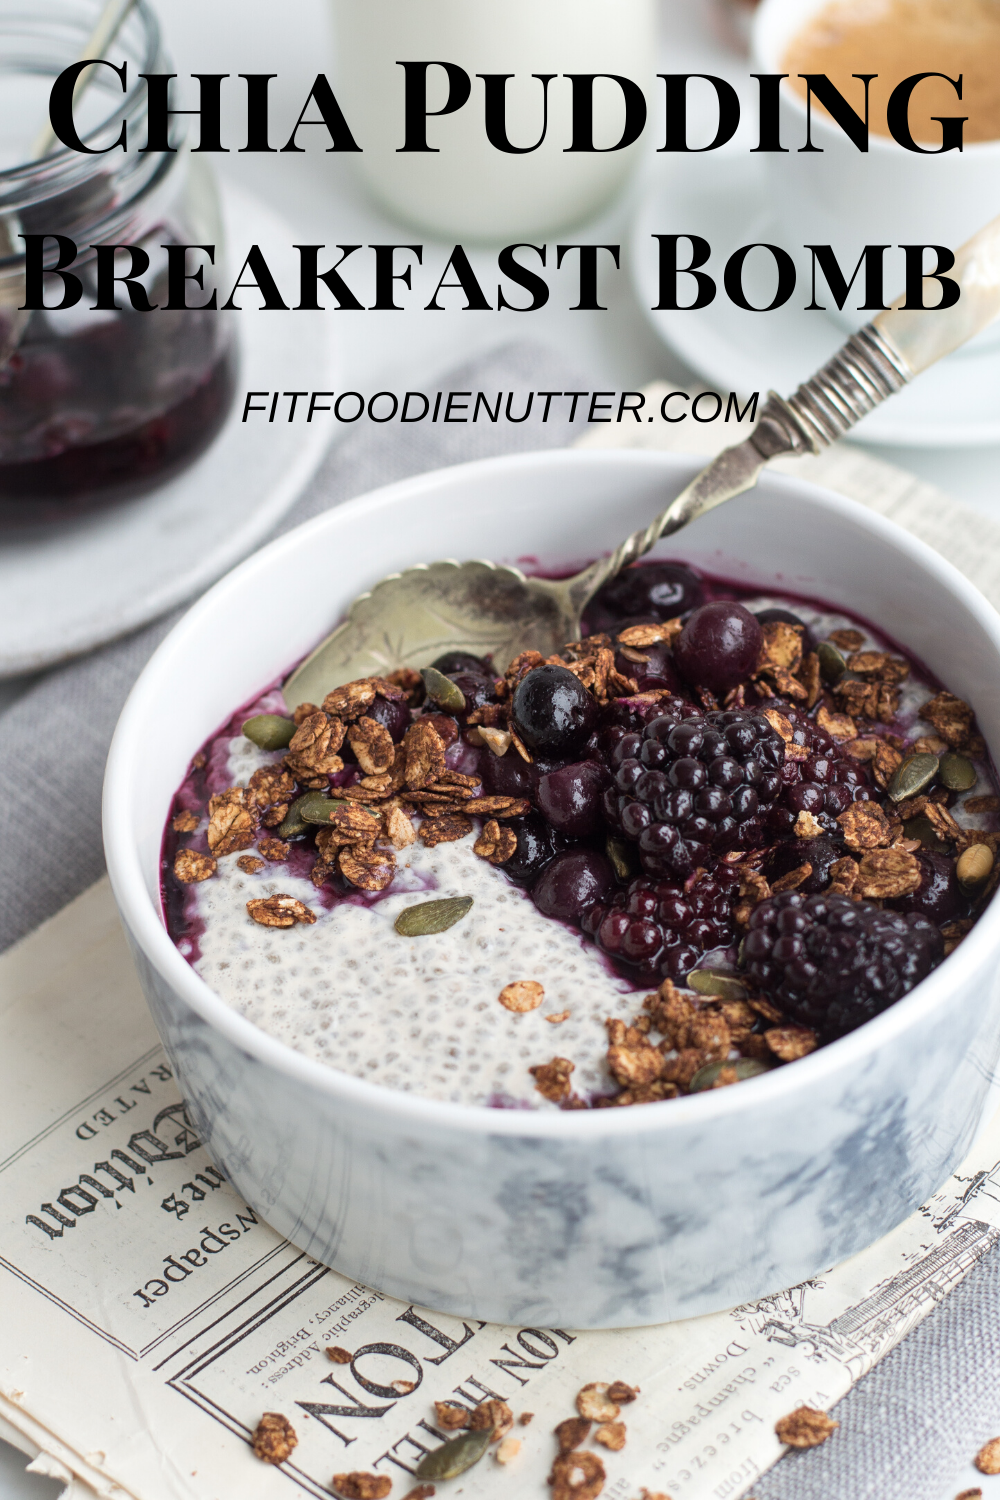 Chia pudding, berry compote & chocolate granola in a bowl